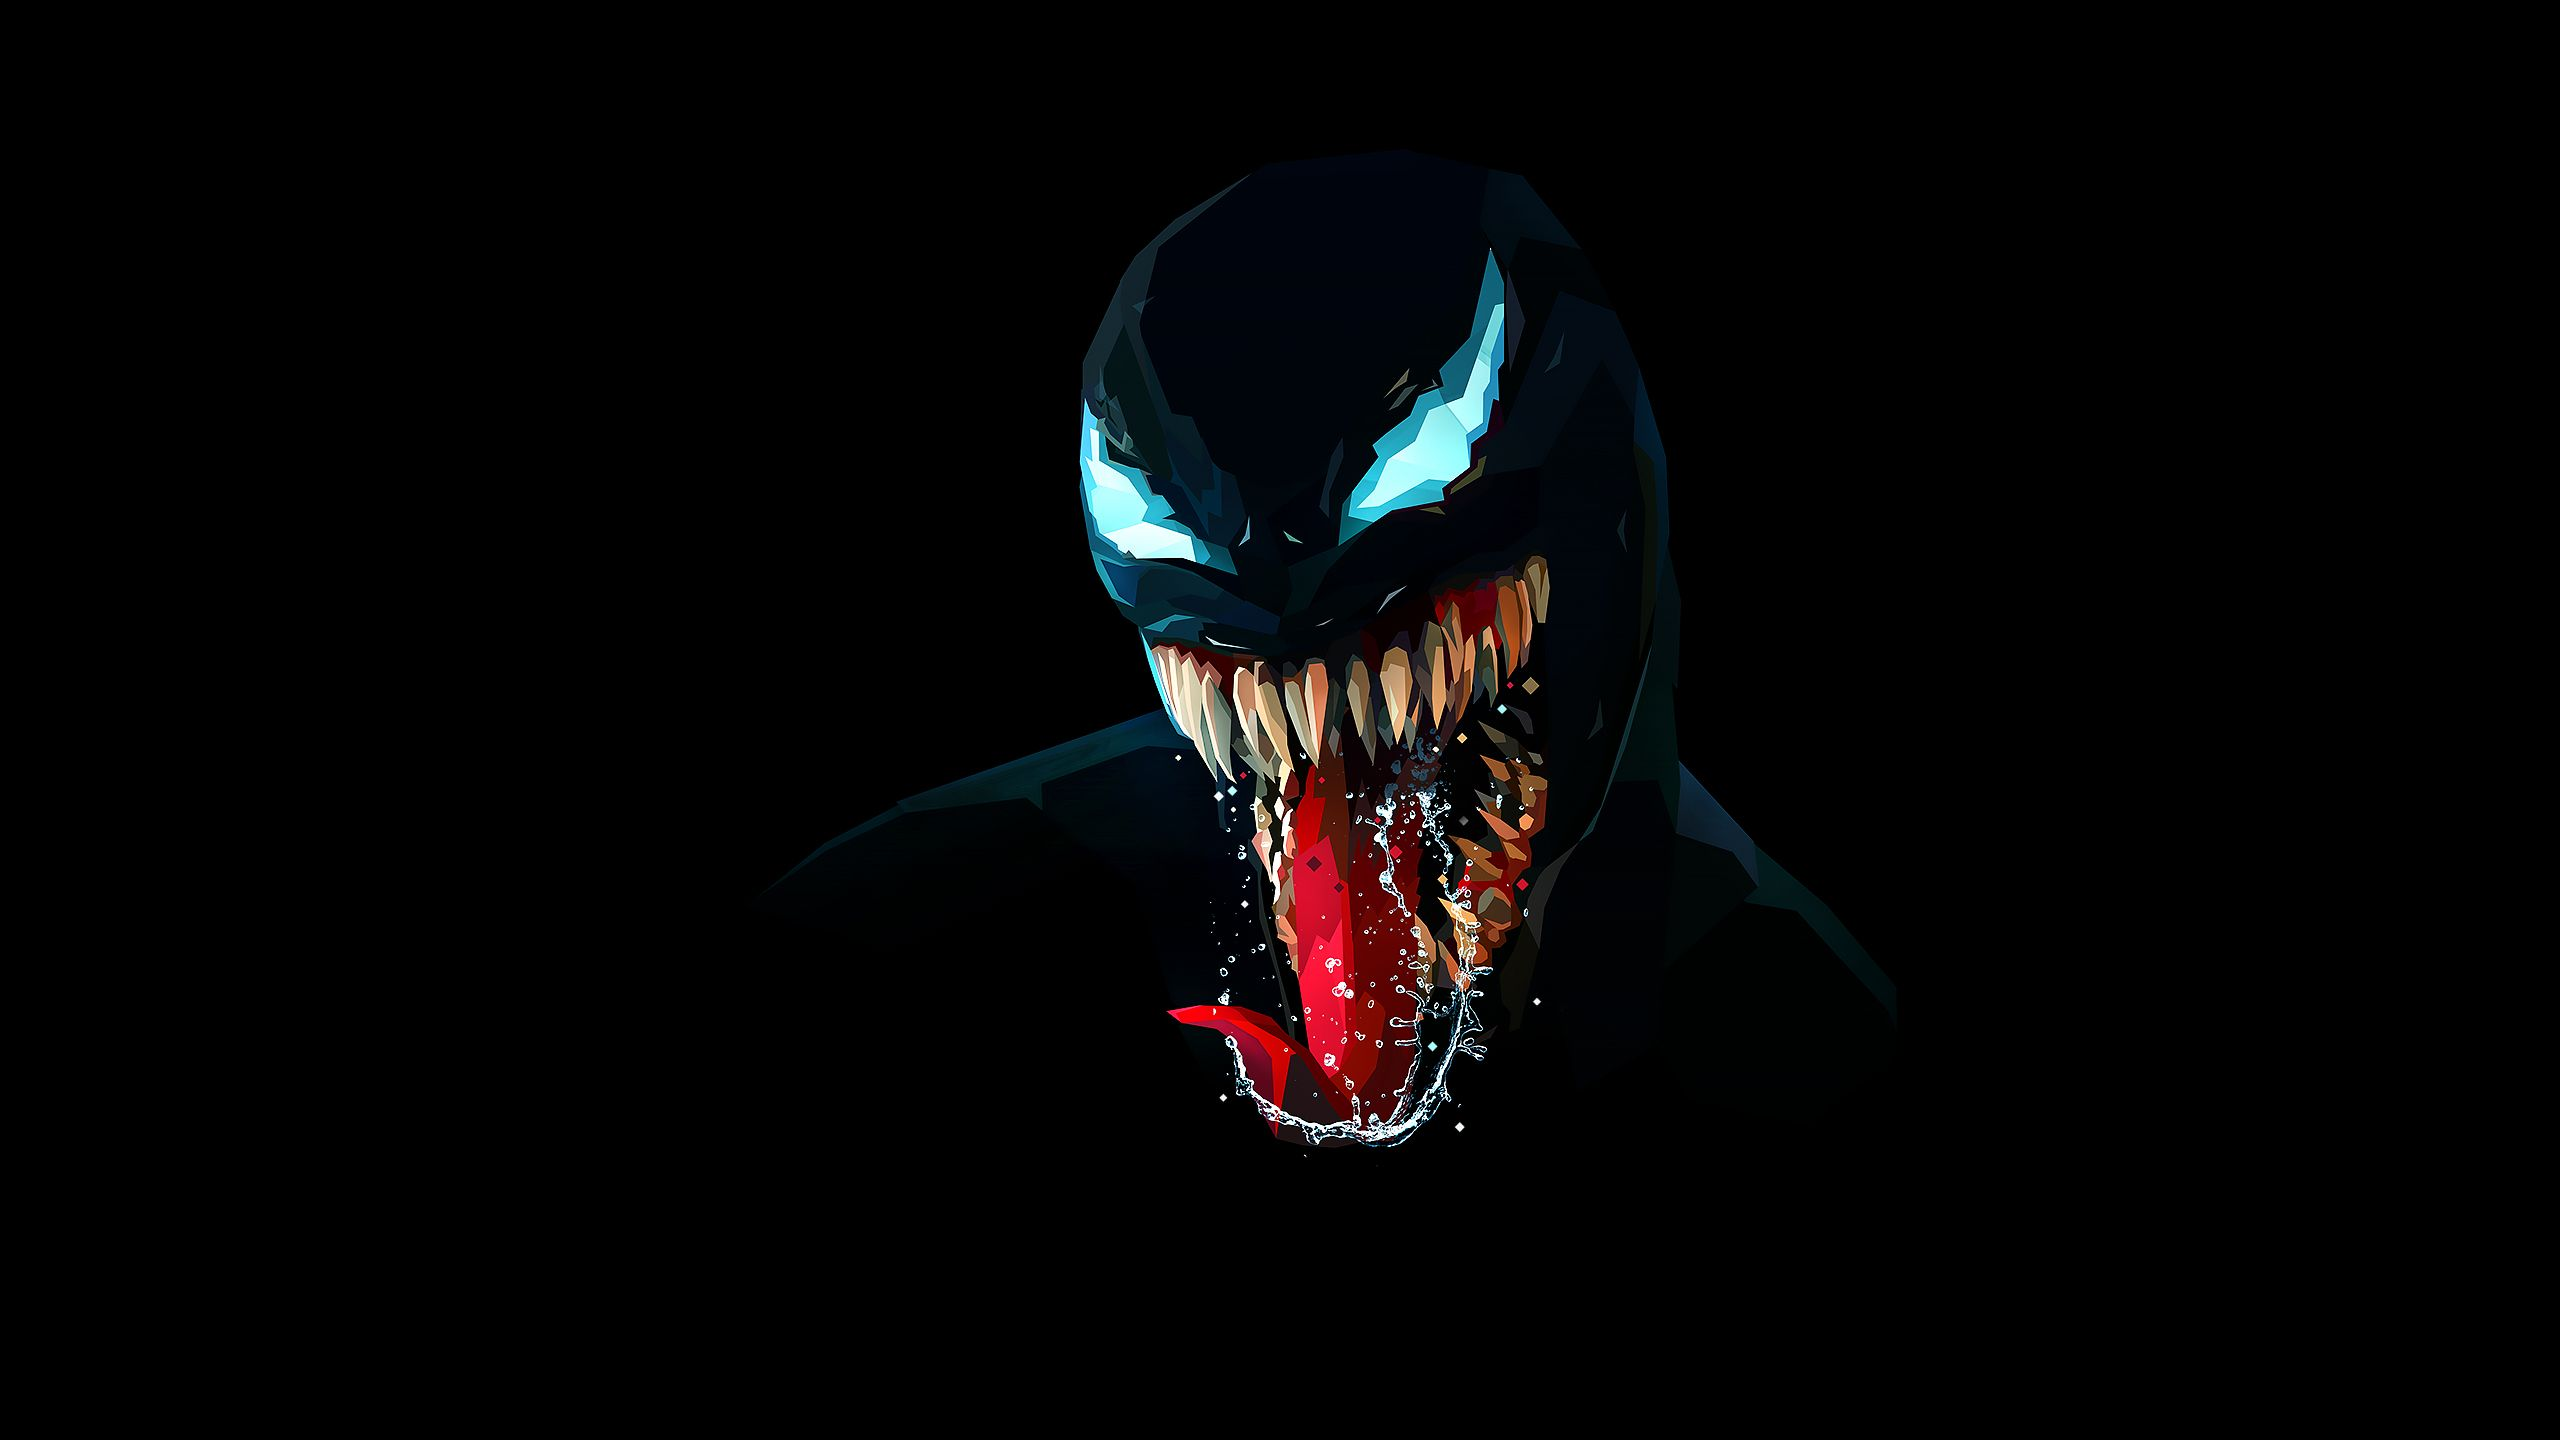 Wallpaper By Justin Maller We Are Venom Rainbows